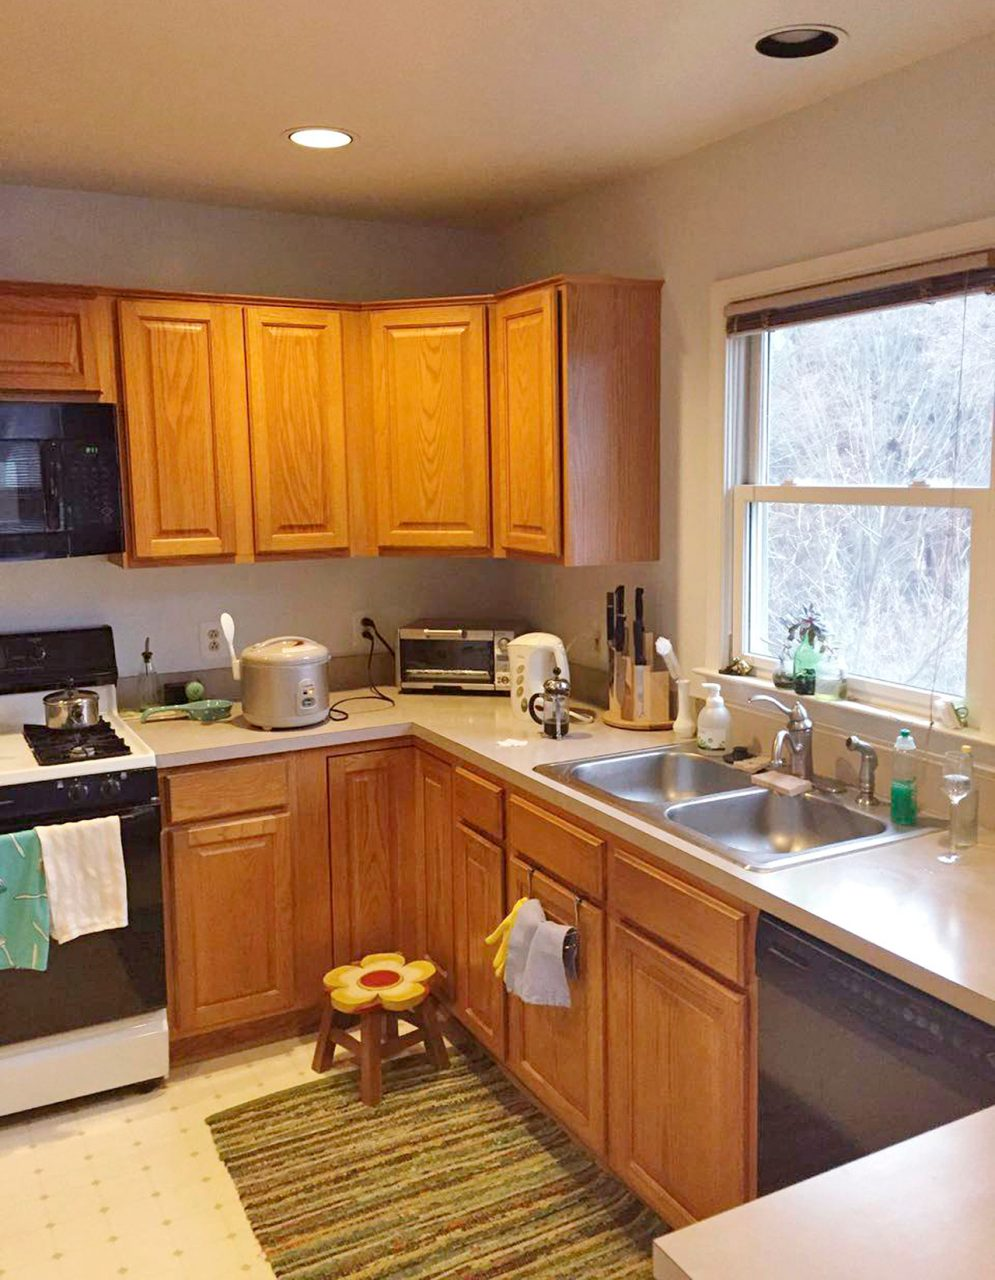 20 Unbelievable Before And After Kitchen Makeovers